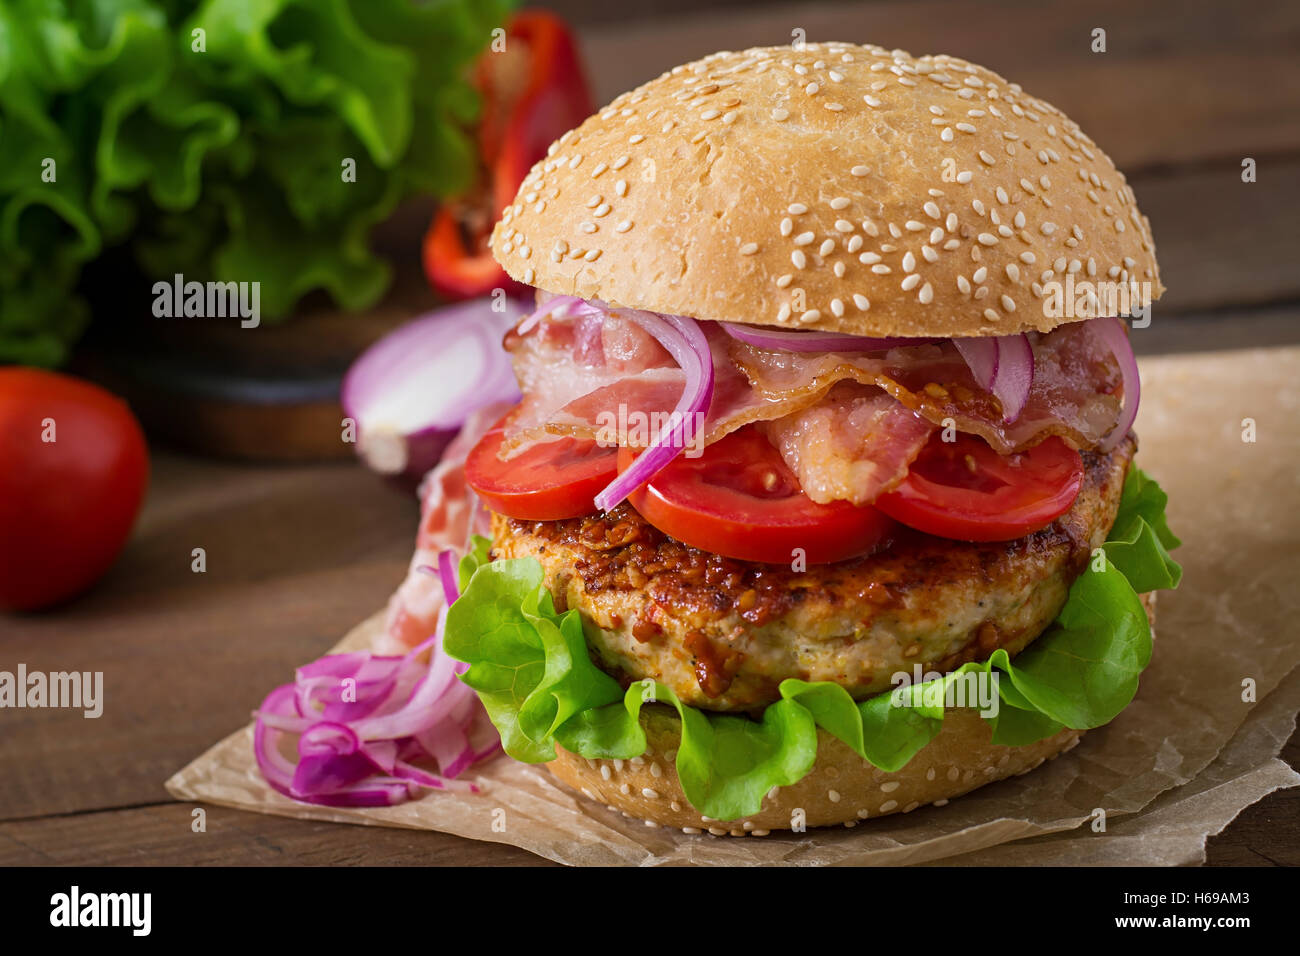 Big sandwich - hamburger burger with beef, red onion, tomato and fried bacon. - Stock Image